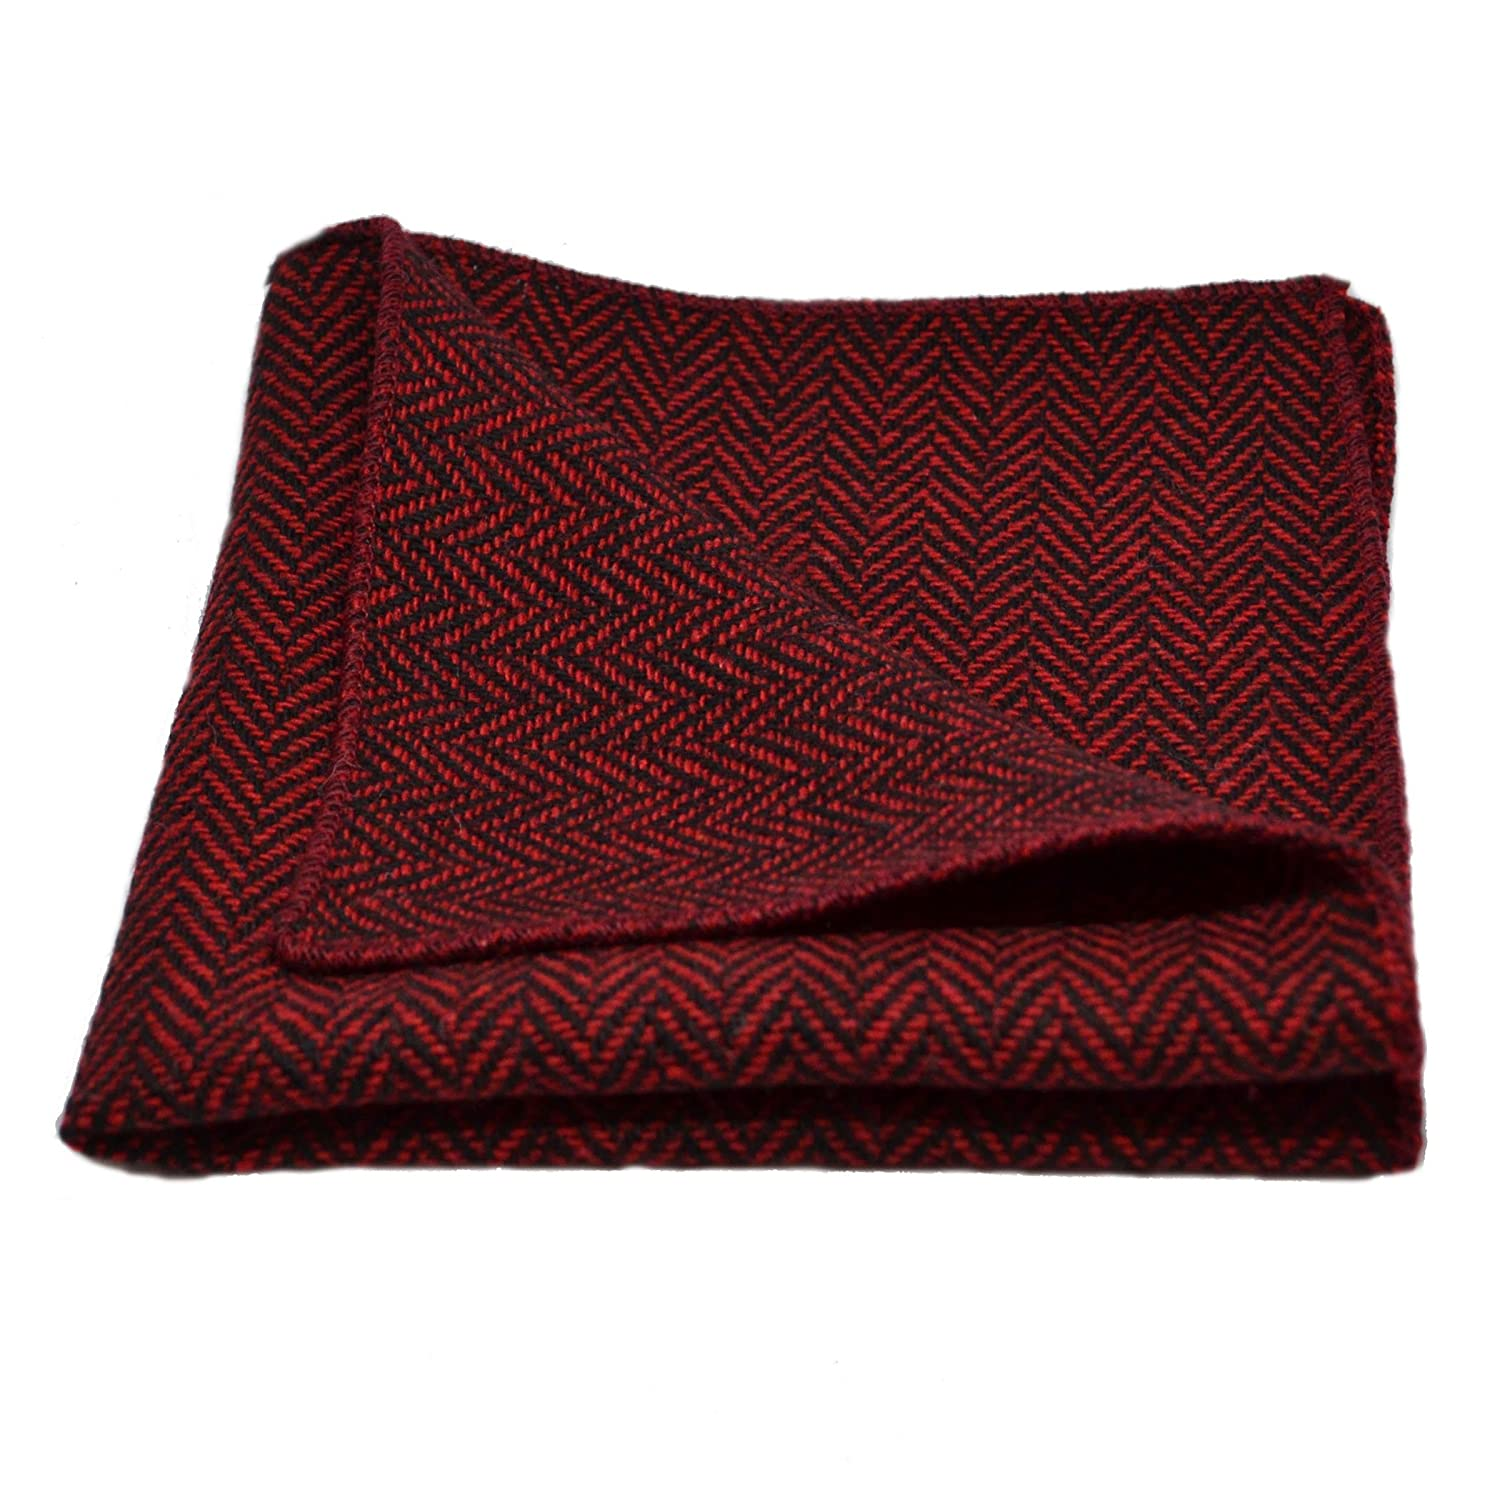 Cranberry Red & Black Herringbone Pocket Square, Handkerchief King & Priory